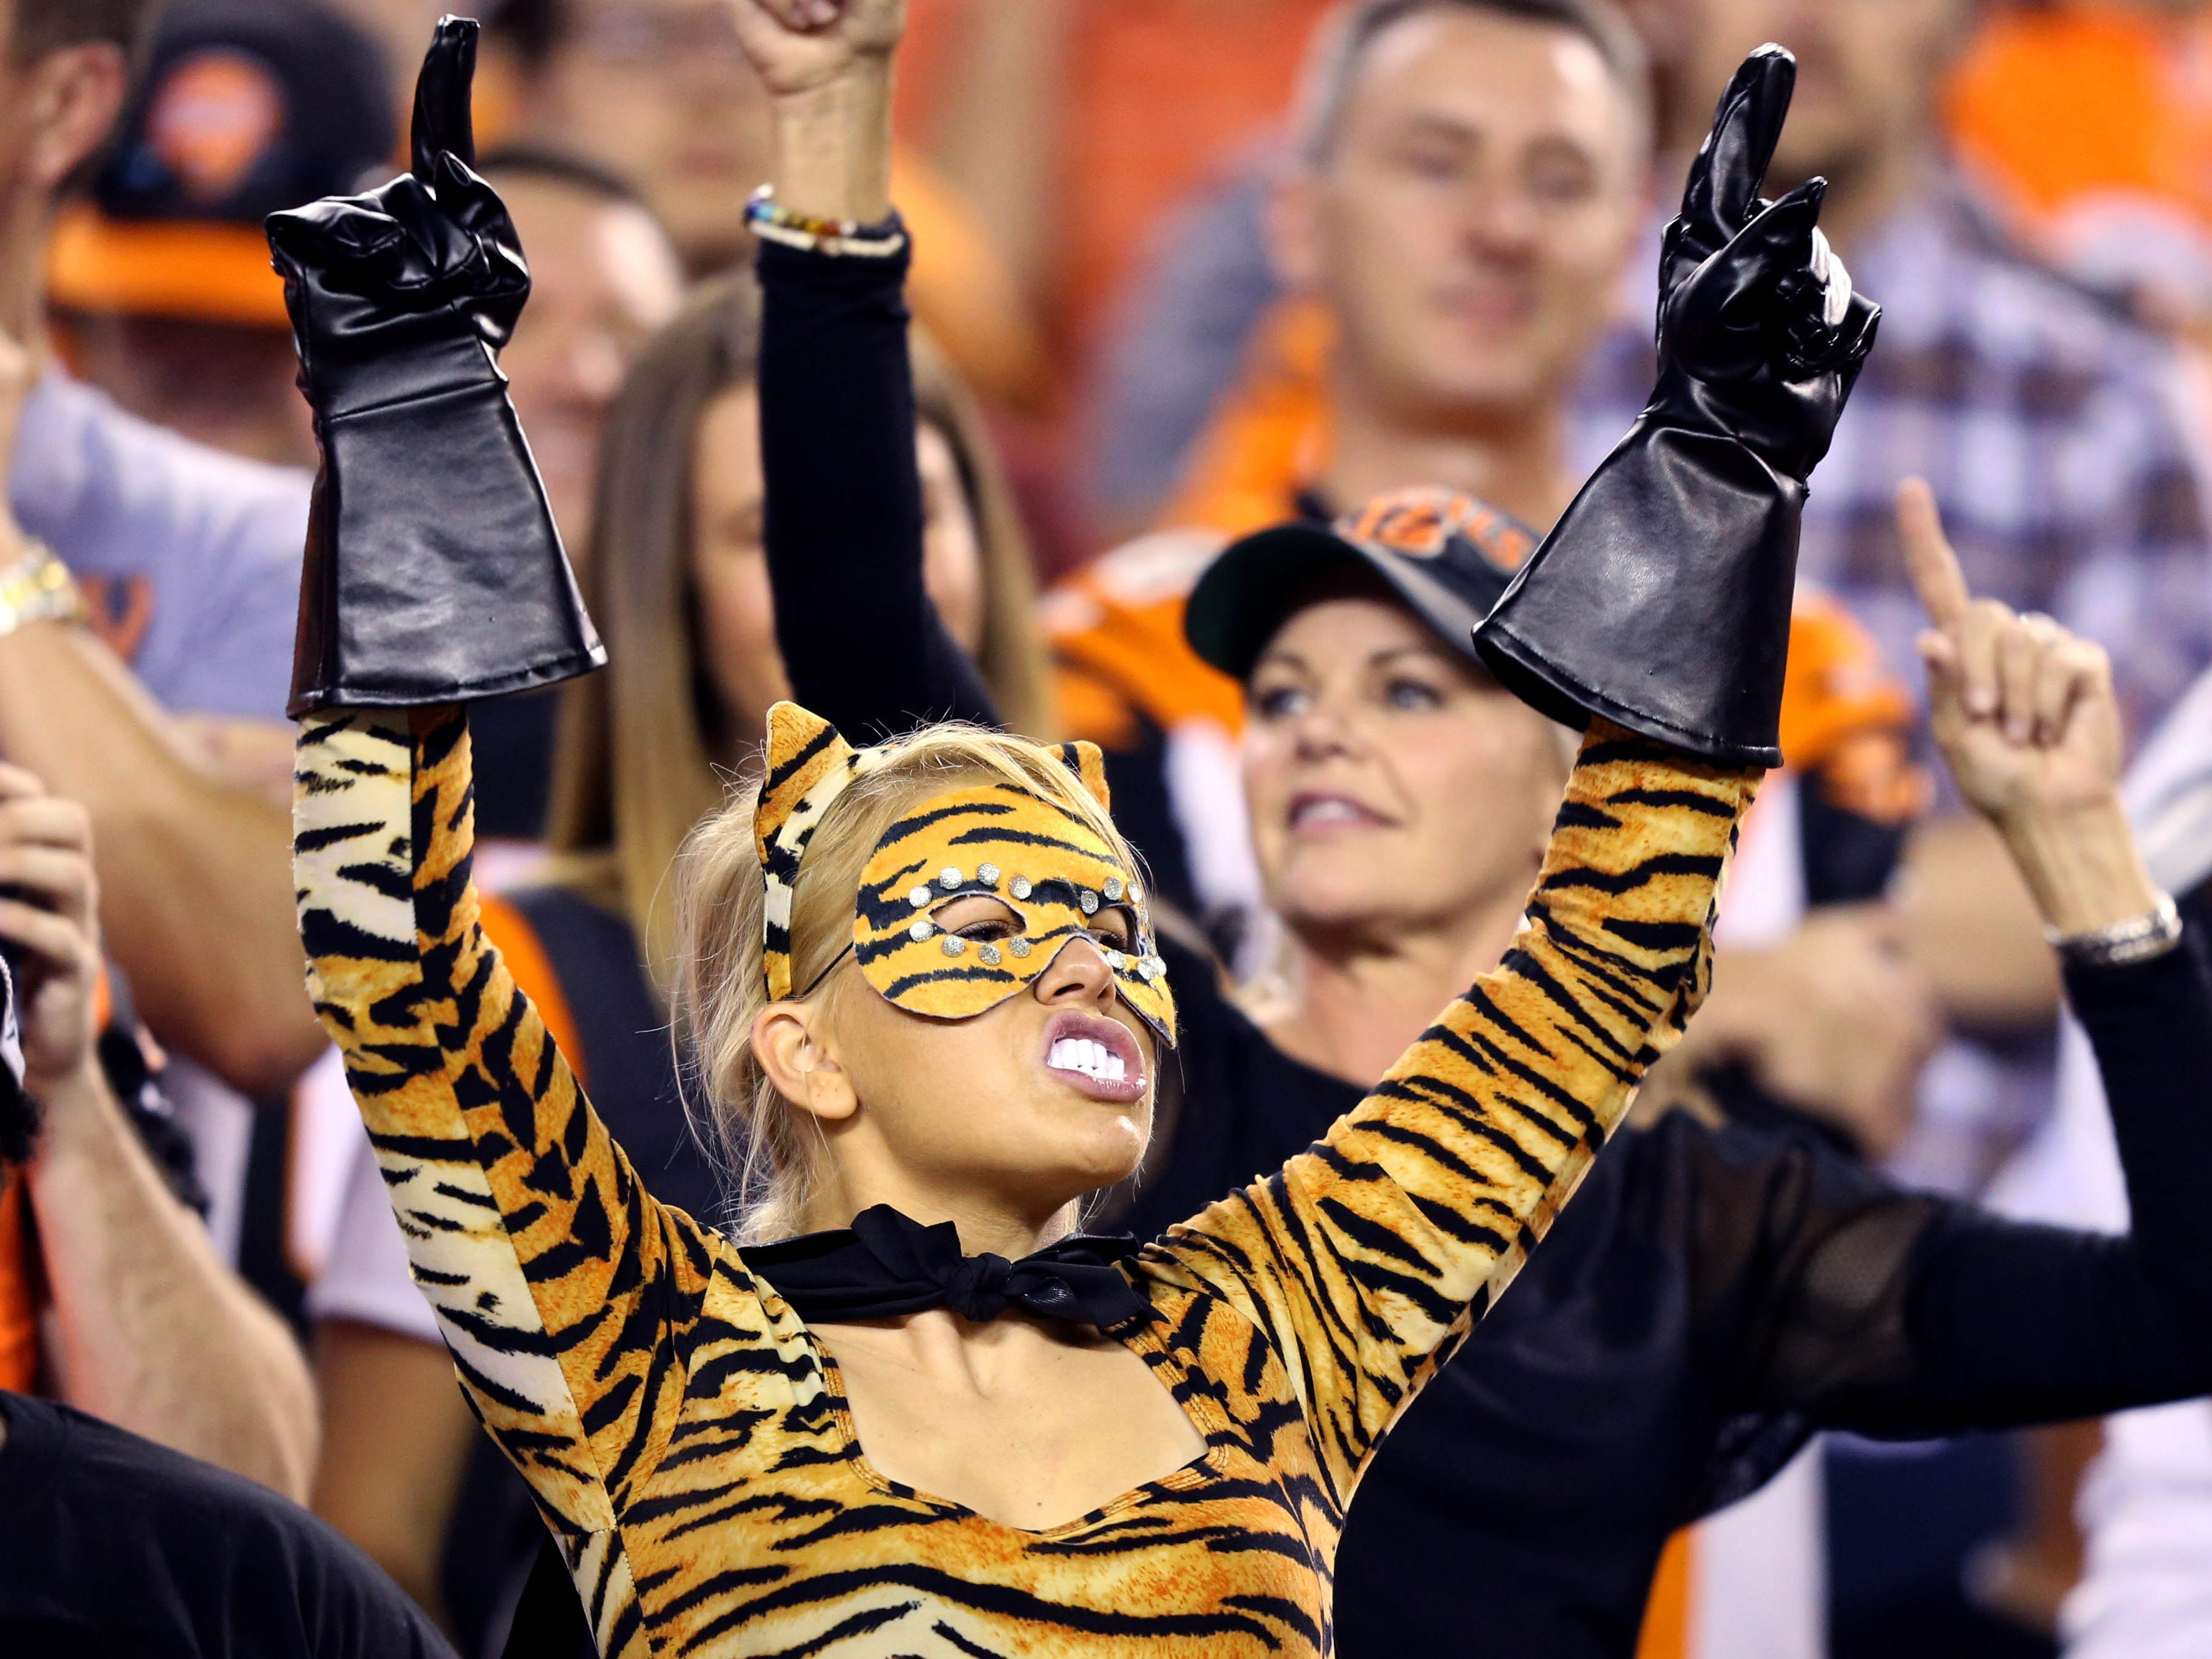 A fan shows support for the Cincinnati Bengals during the game against the Baltimore Ravens at Paul Brown Stadium.